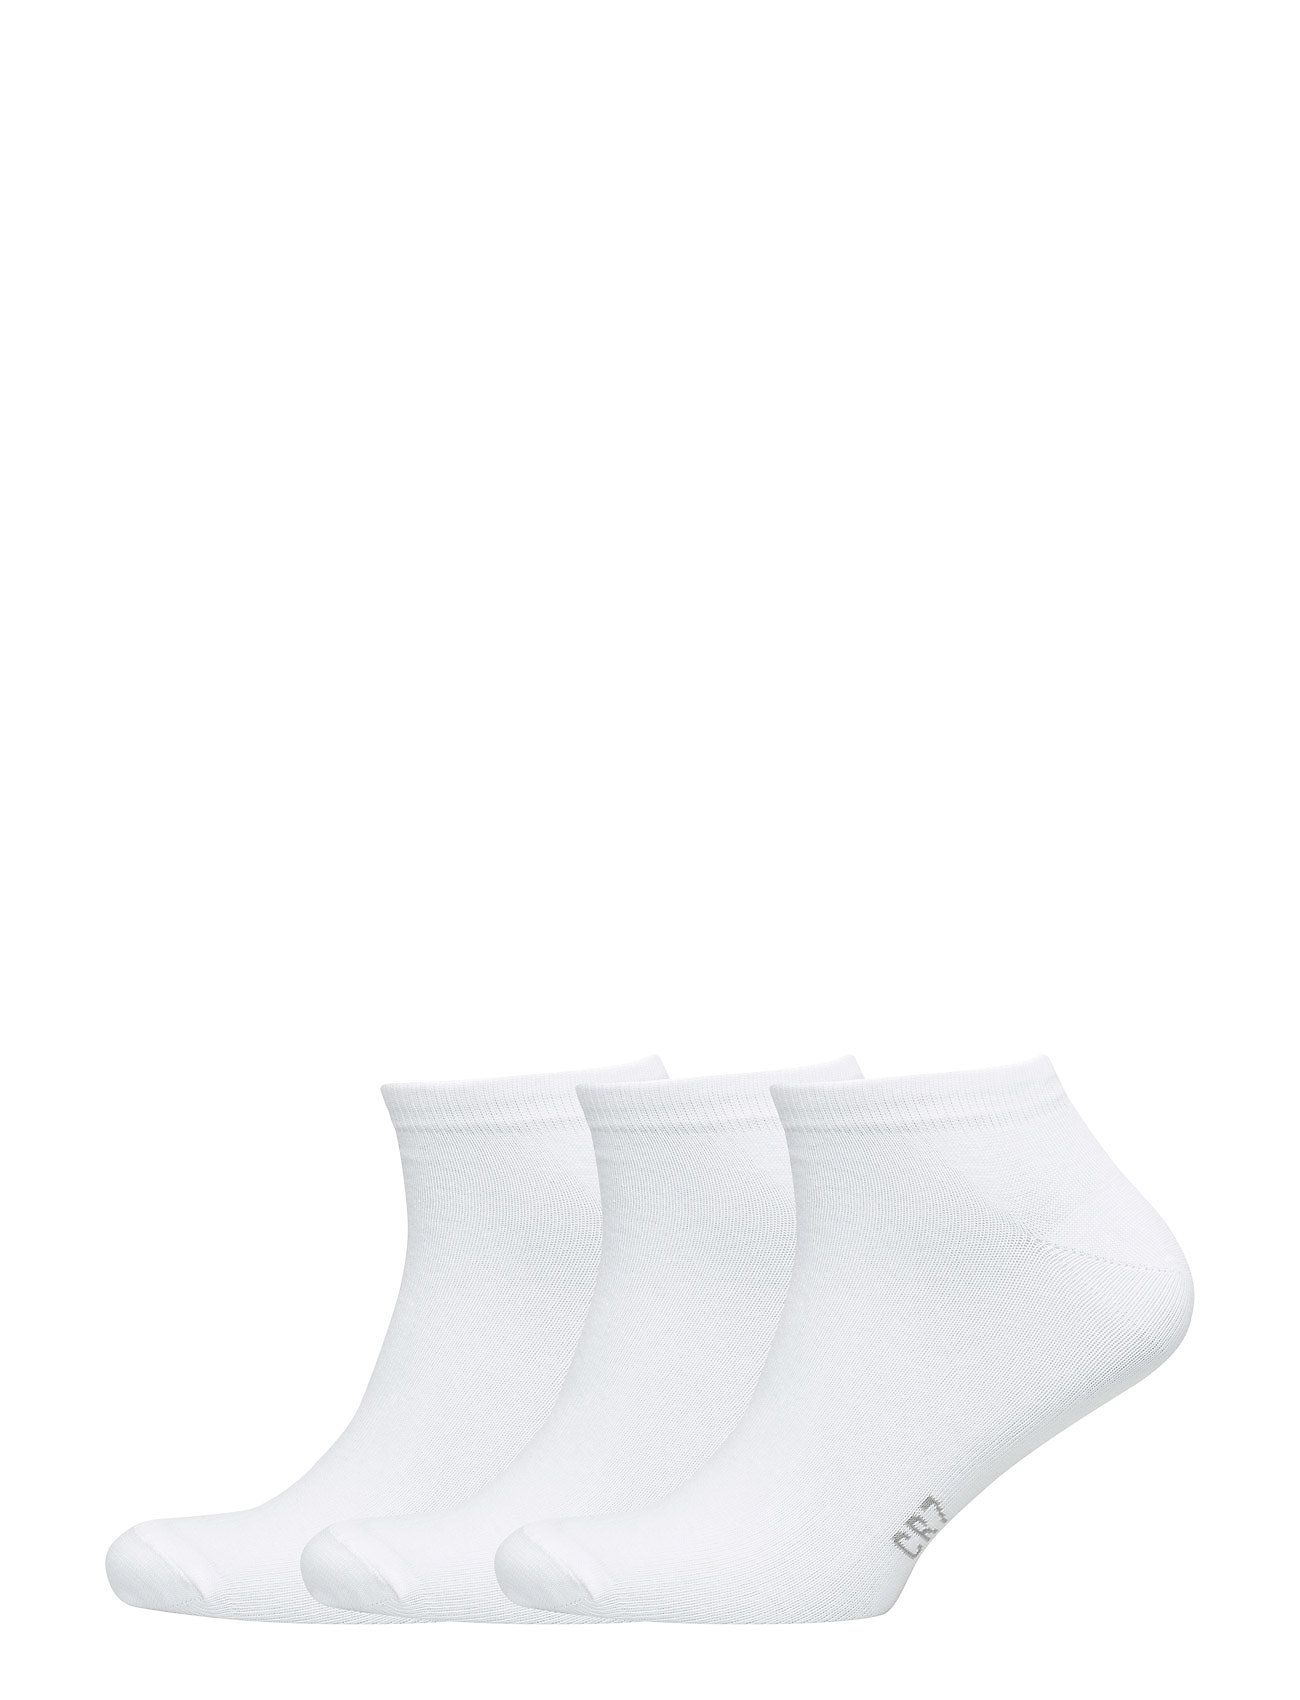 CR7 Cotton Stretch 3-pack - WHITE